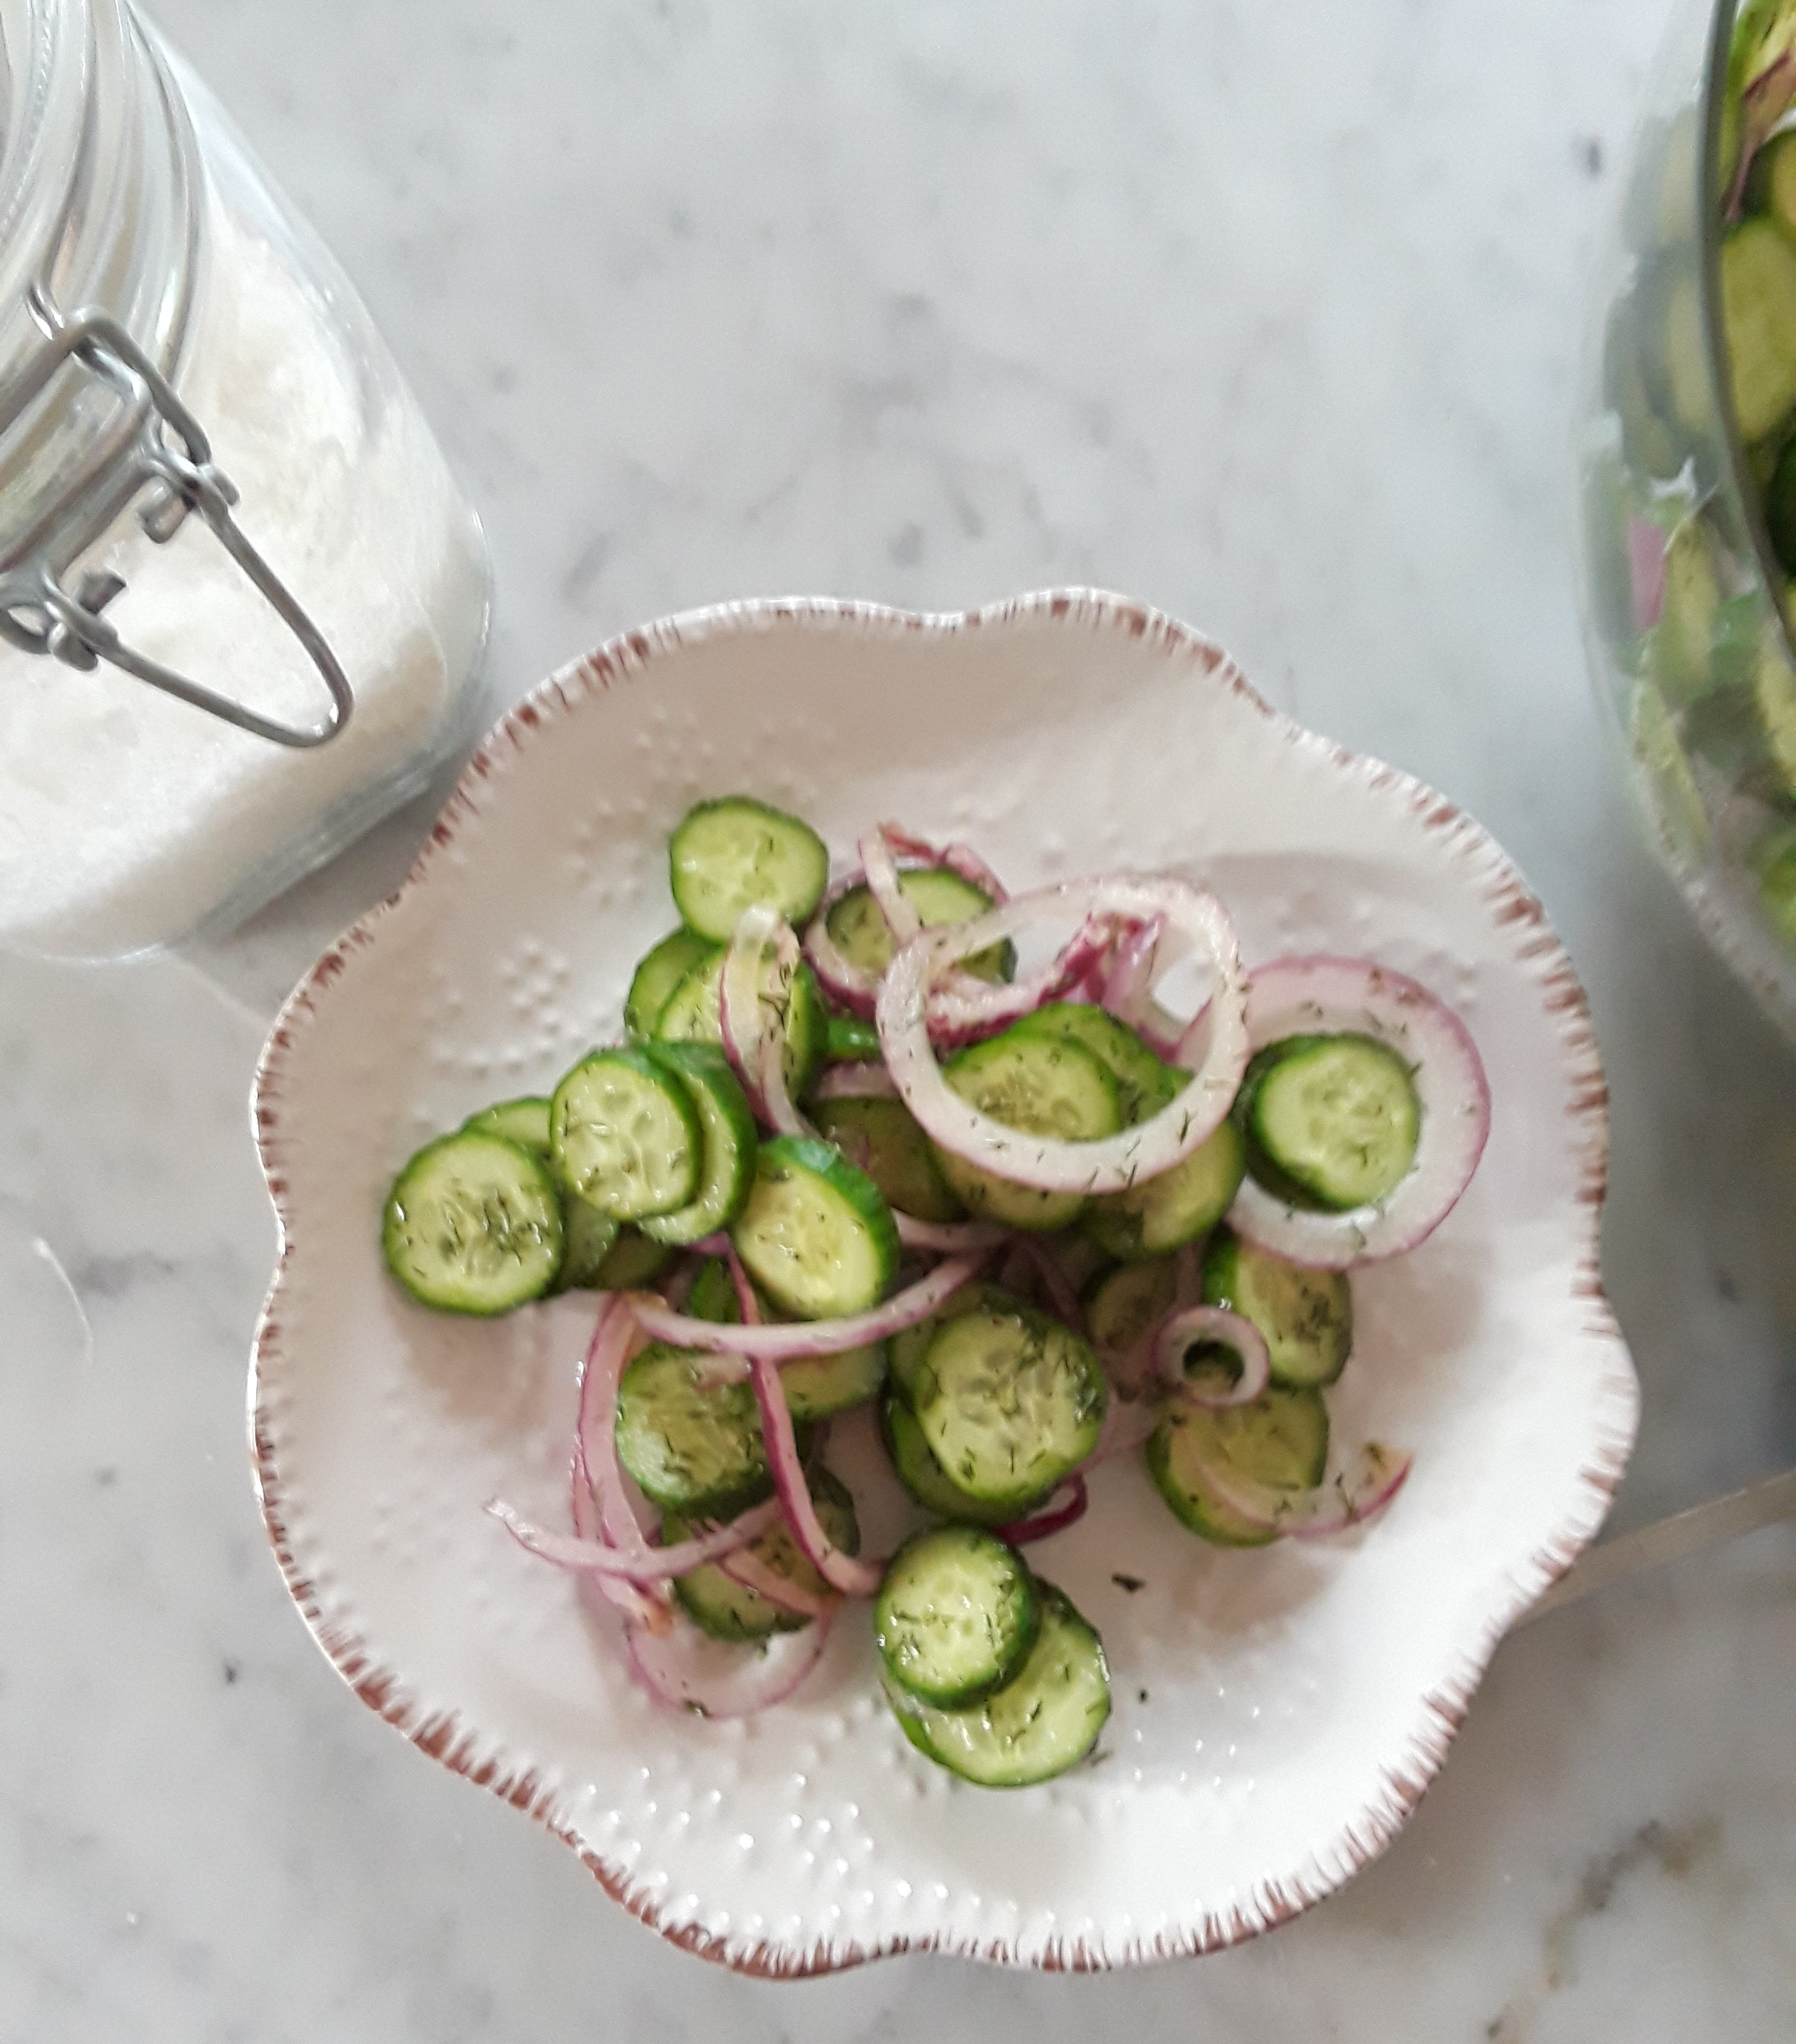 photo of sliced cucumbers and onions with spices and dressing